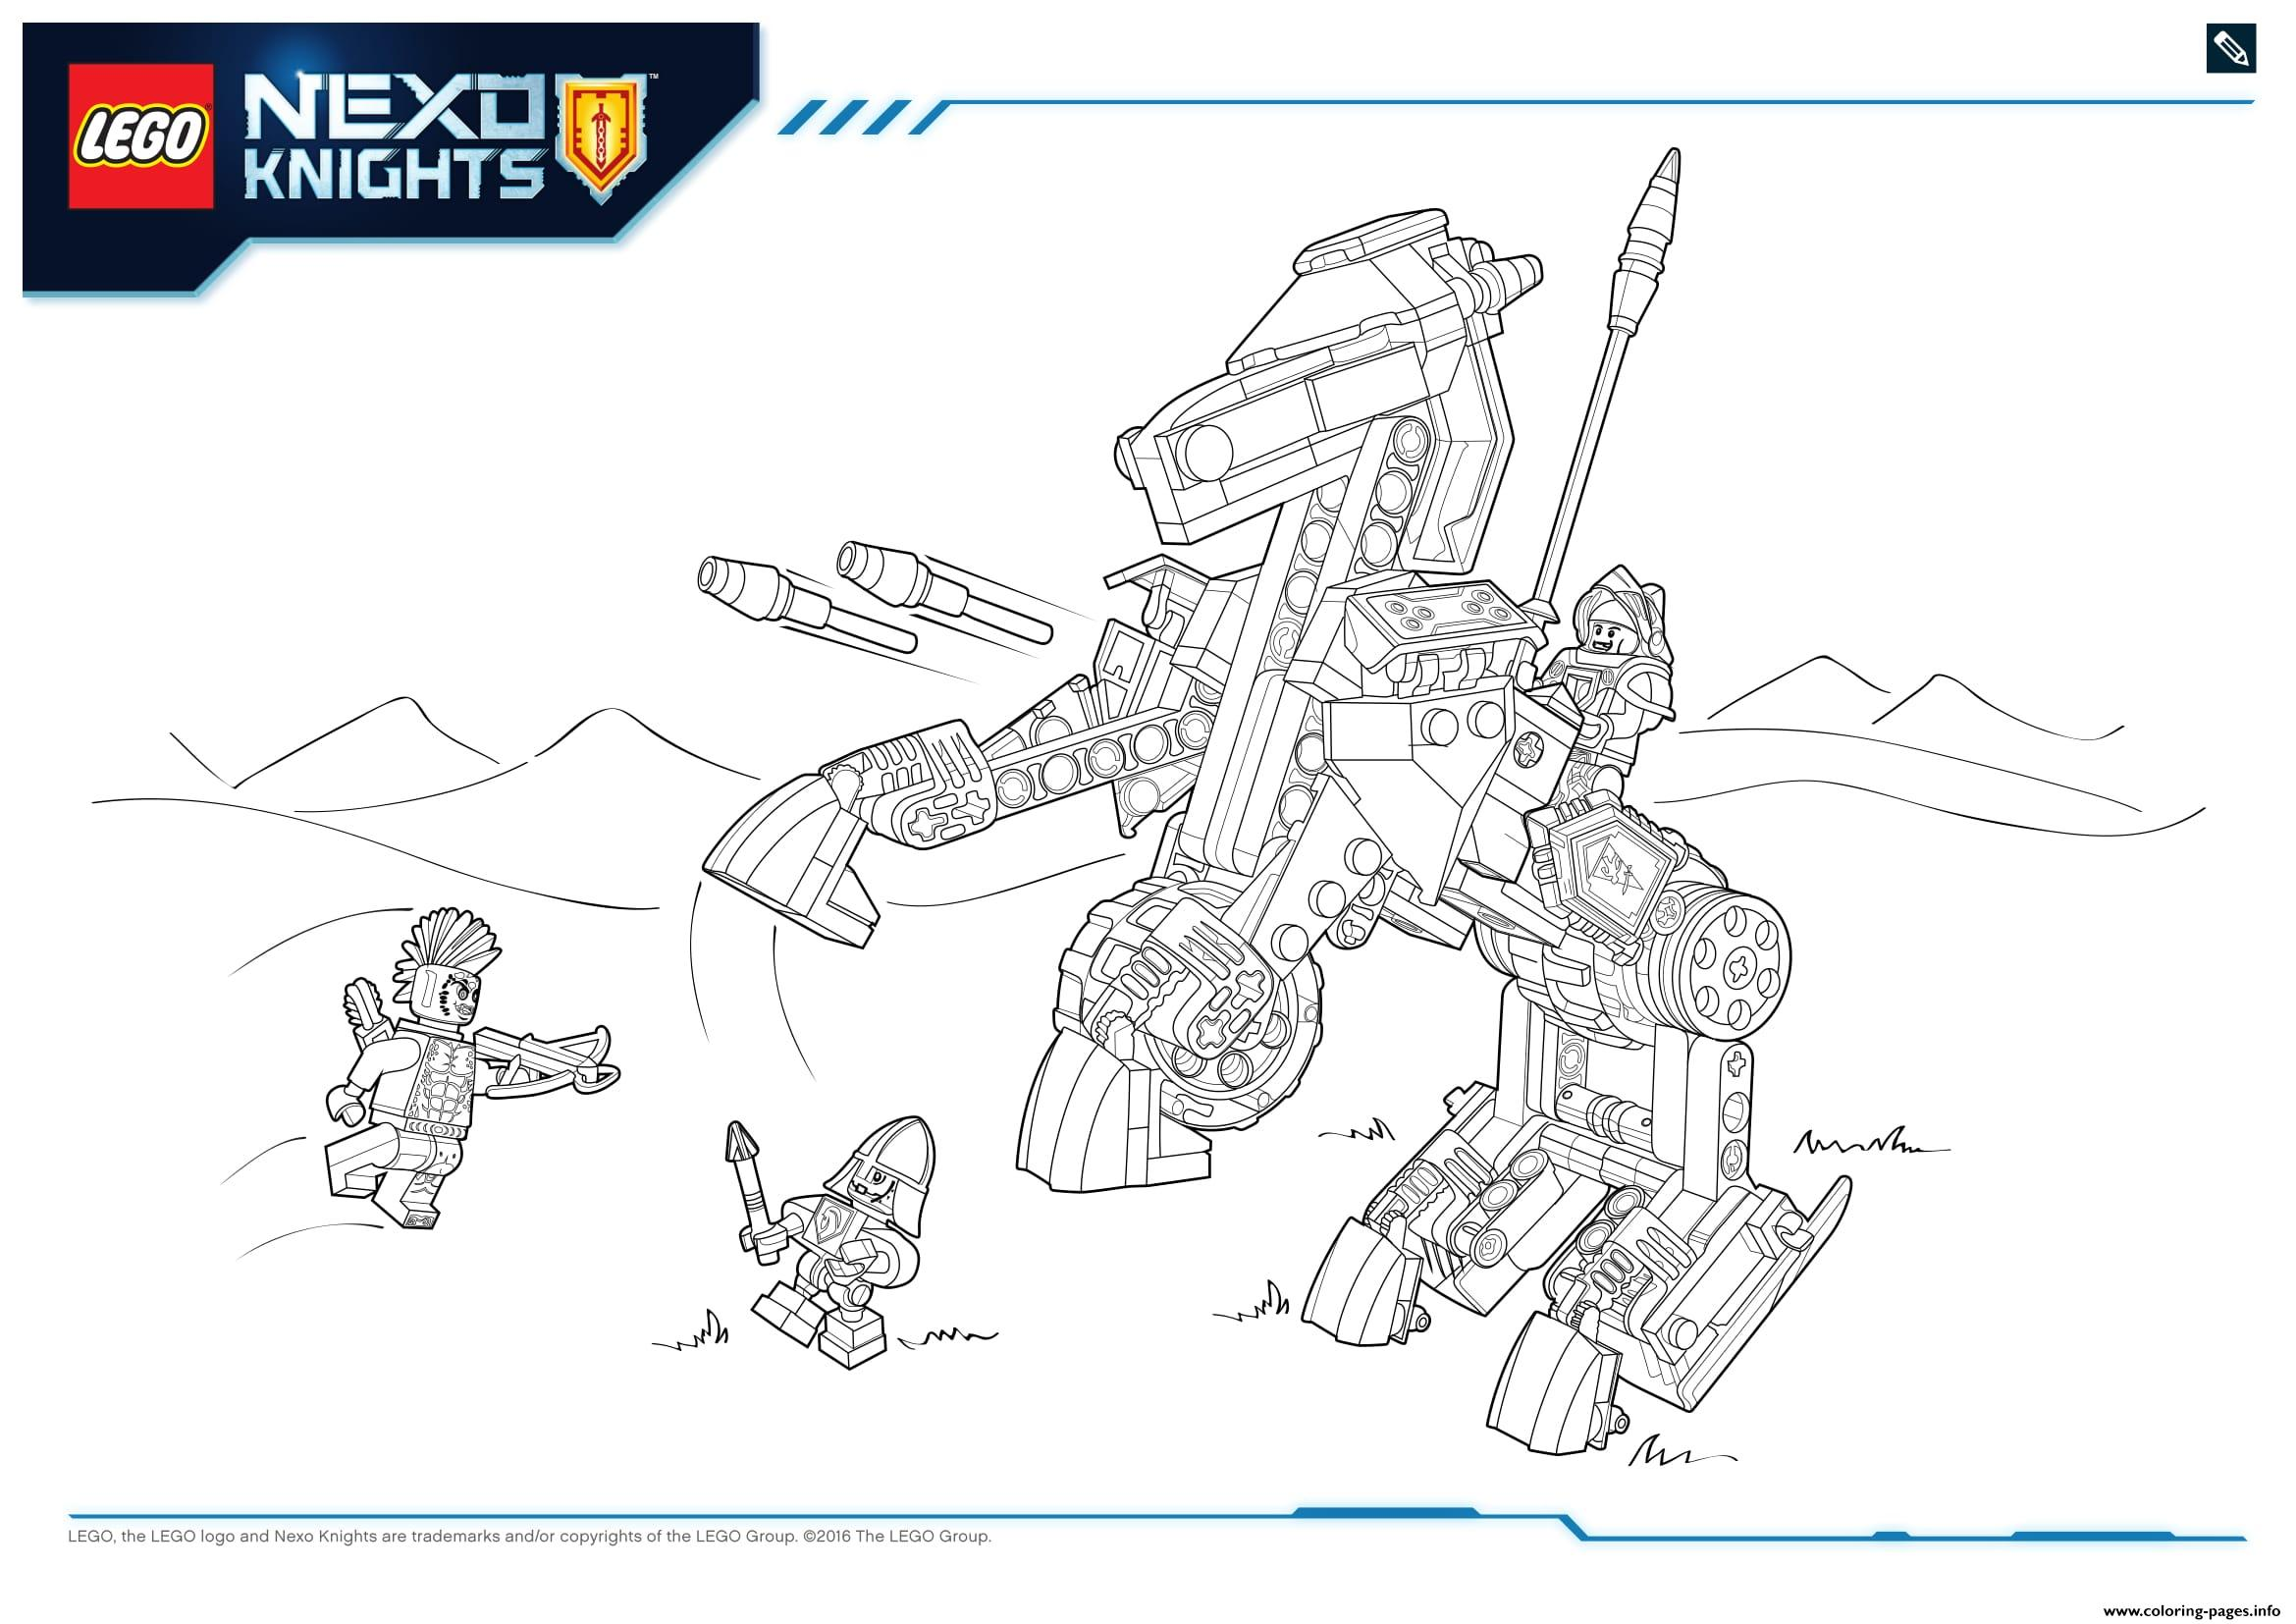 Lego Nexo Knights Products 6 Coloring Pages Printable - nexo knight coloring pages